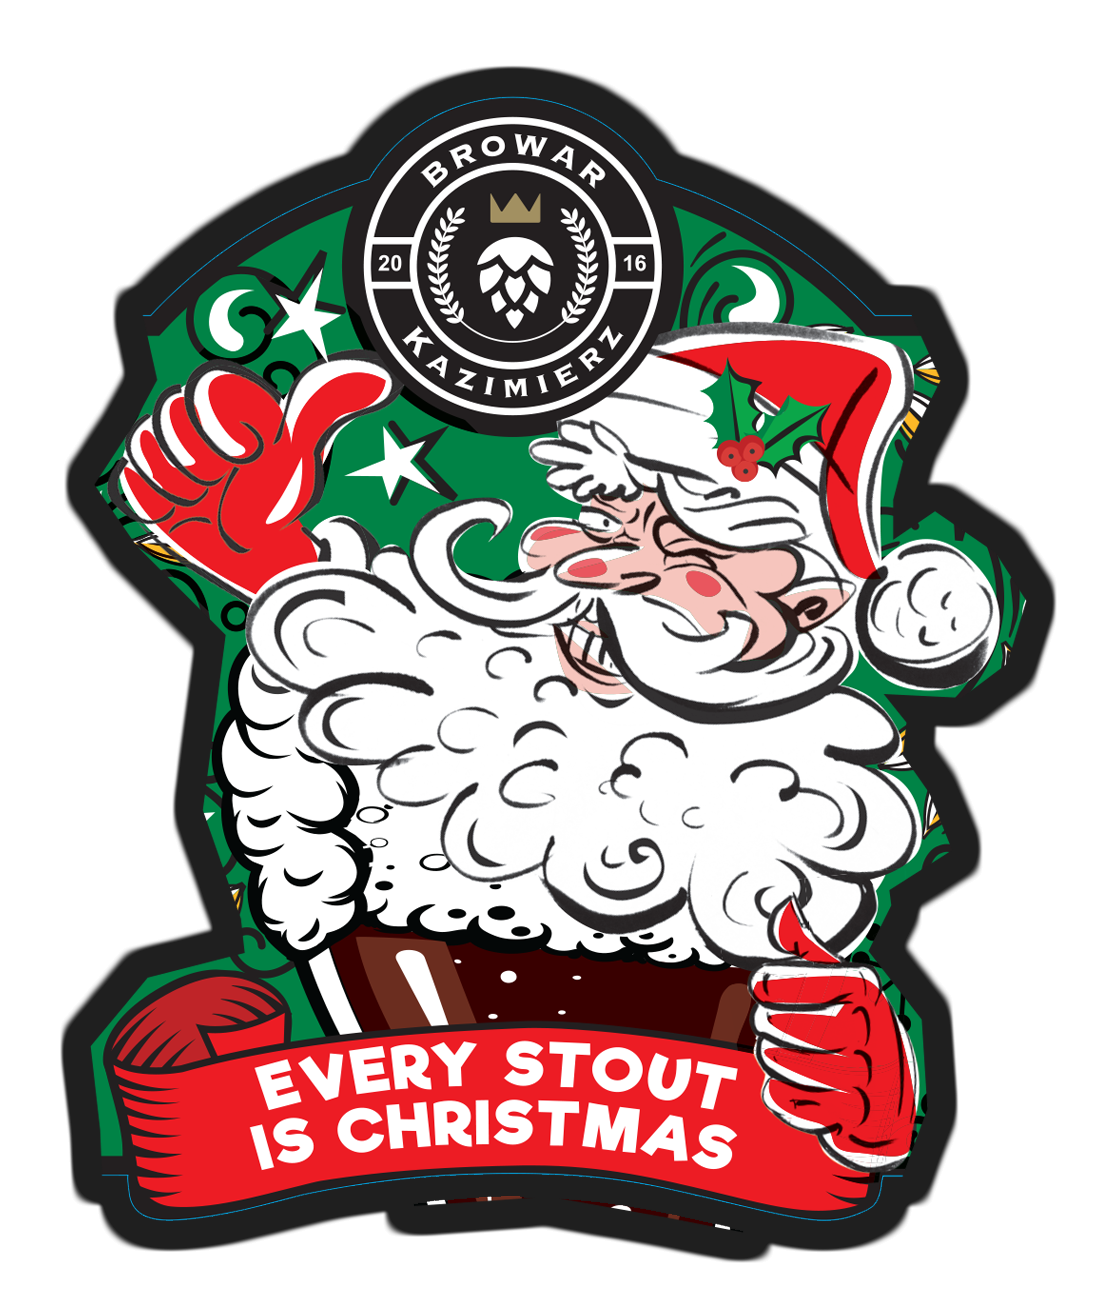 Piwo Every Stout Is Christmas